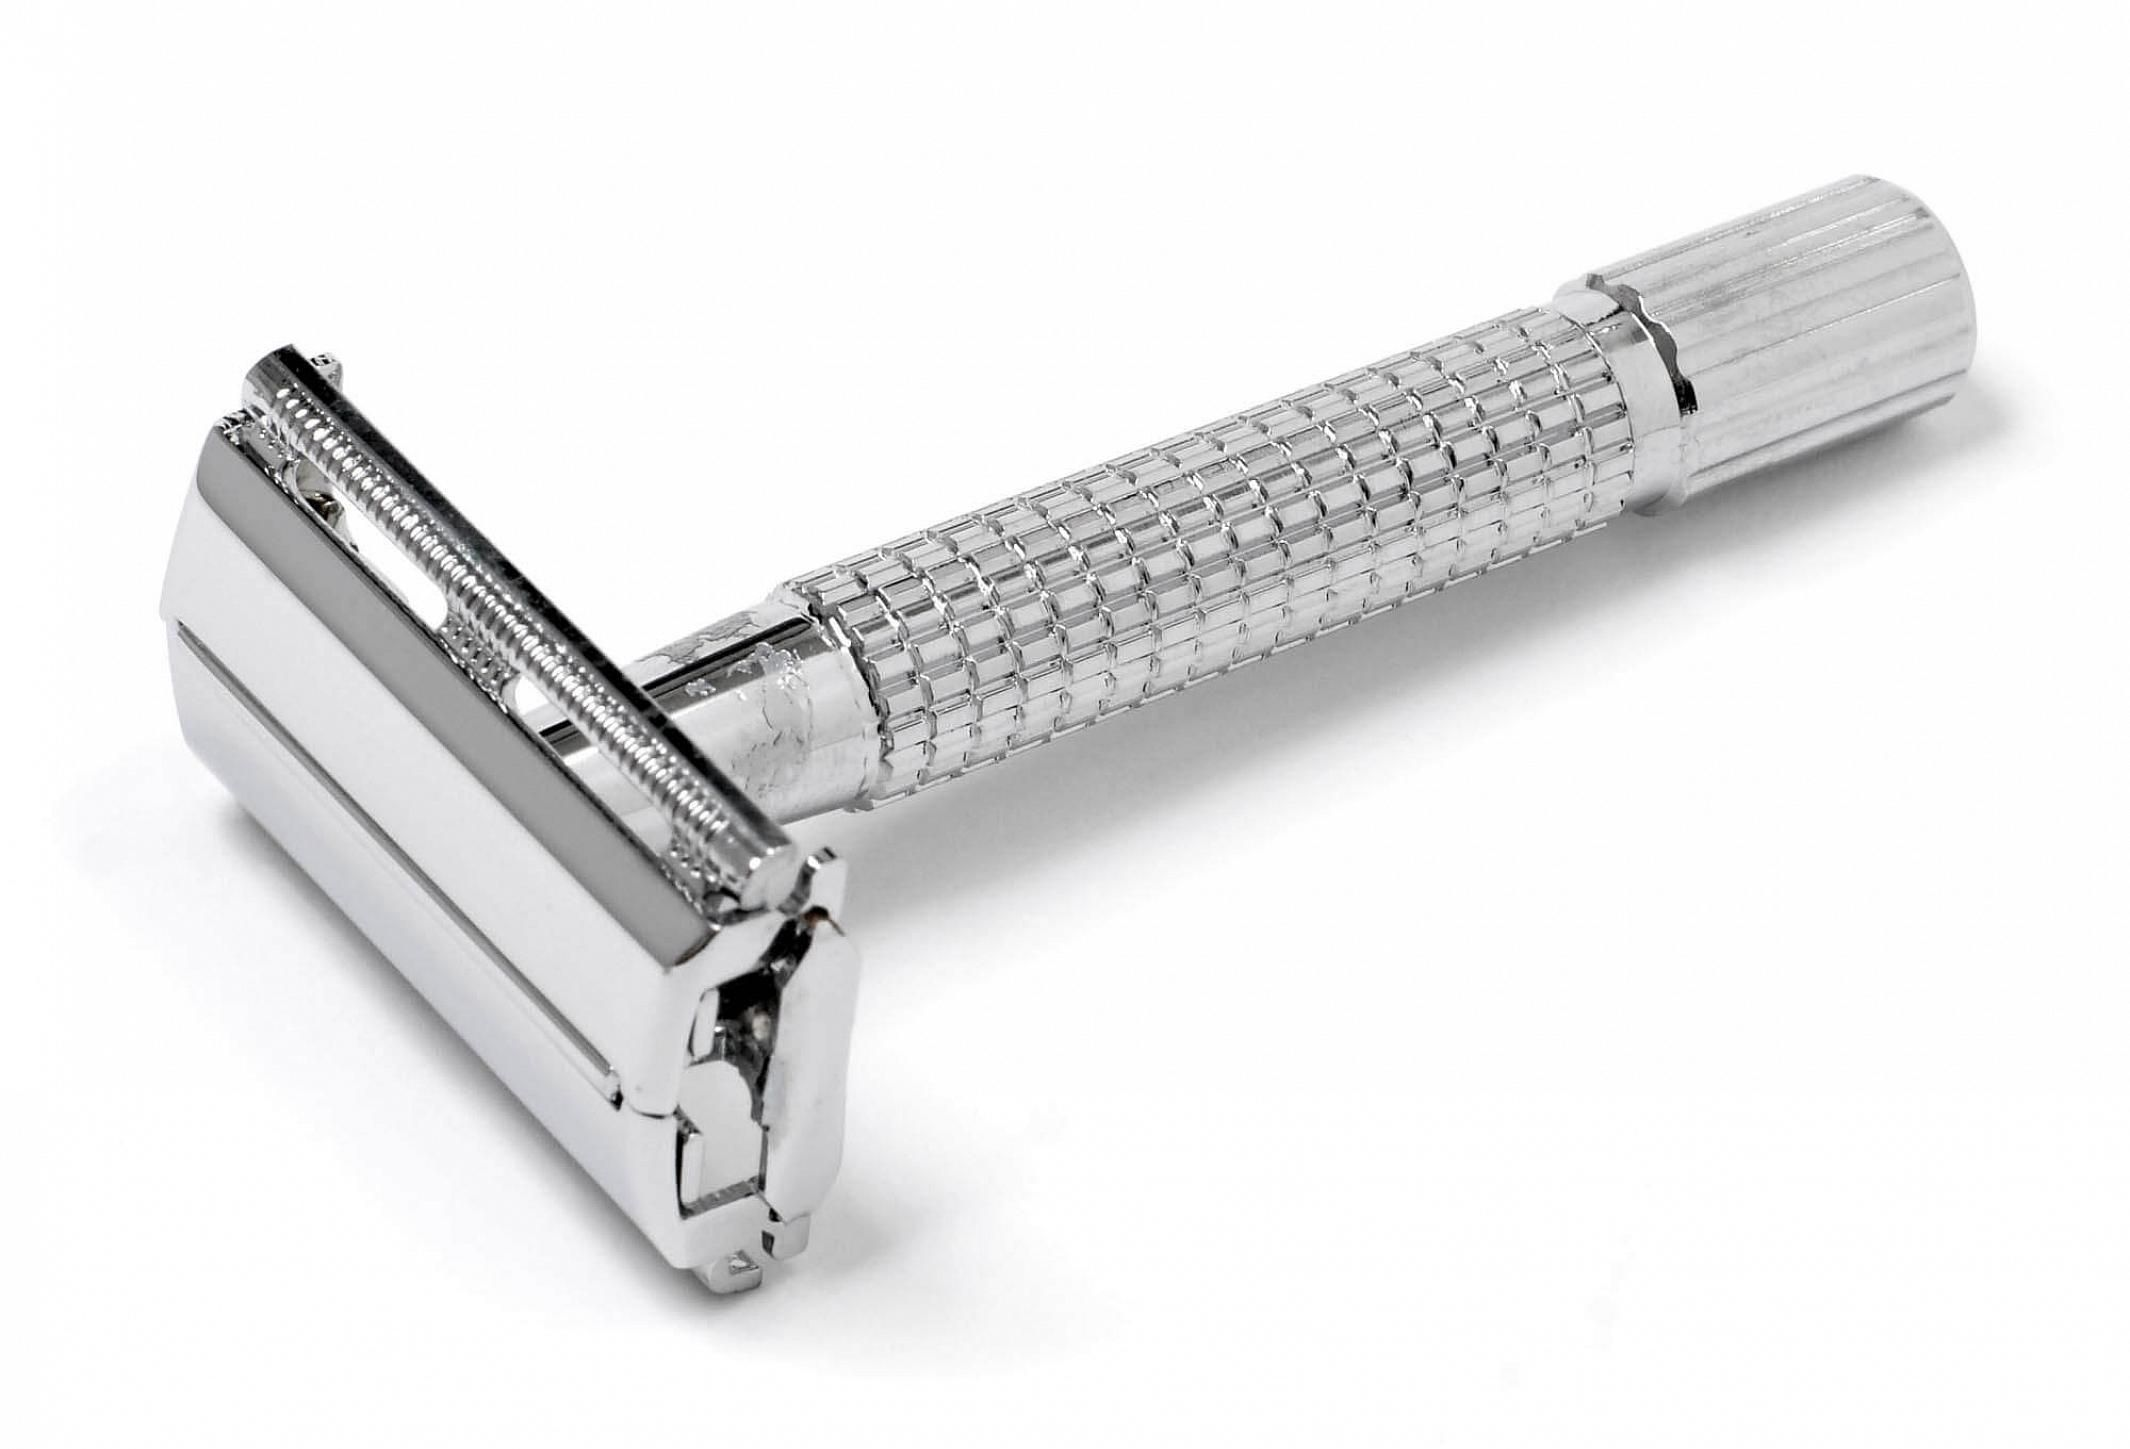 Not your grandfather's razor